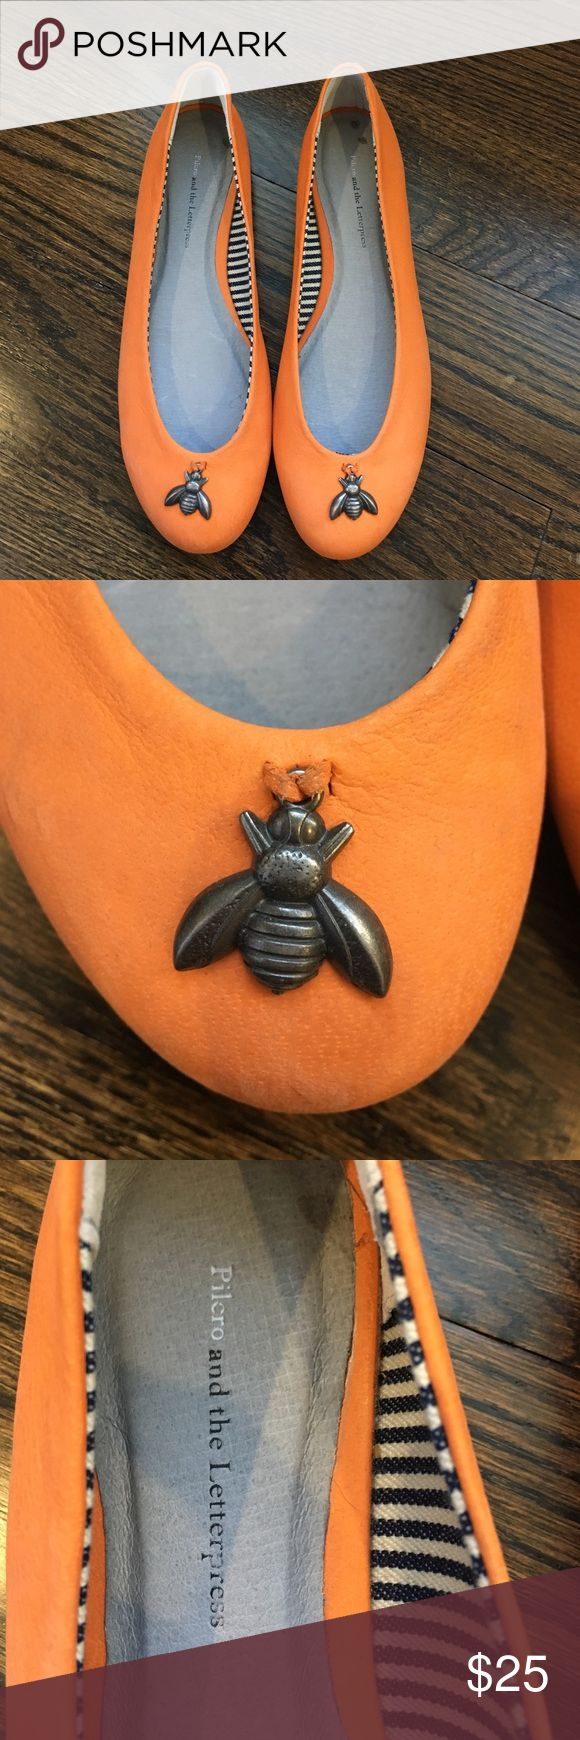 Orange bumblebee shoes from Anthropologie, sz 7 Orange flats from Anthropologie with bumblebee pendant. Brand new without the box. These have never been worn and are in new condition. Size 7. Anthropologie Shoes Flats & Loafers